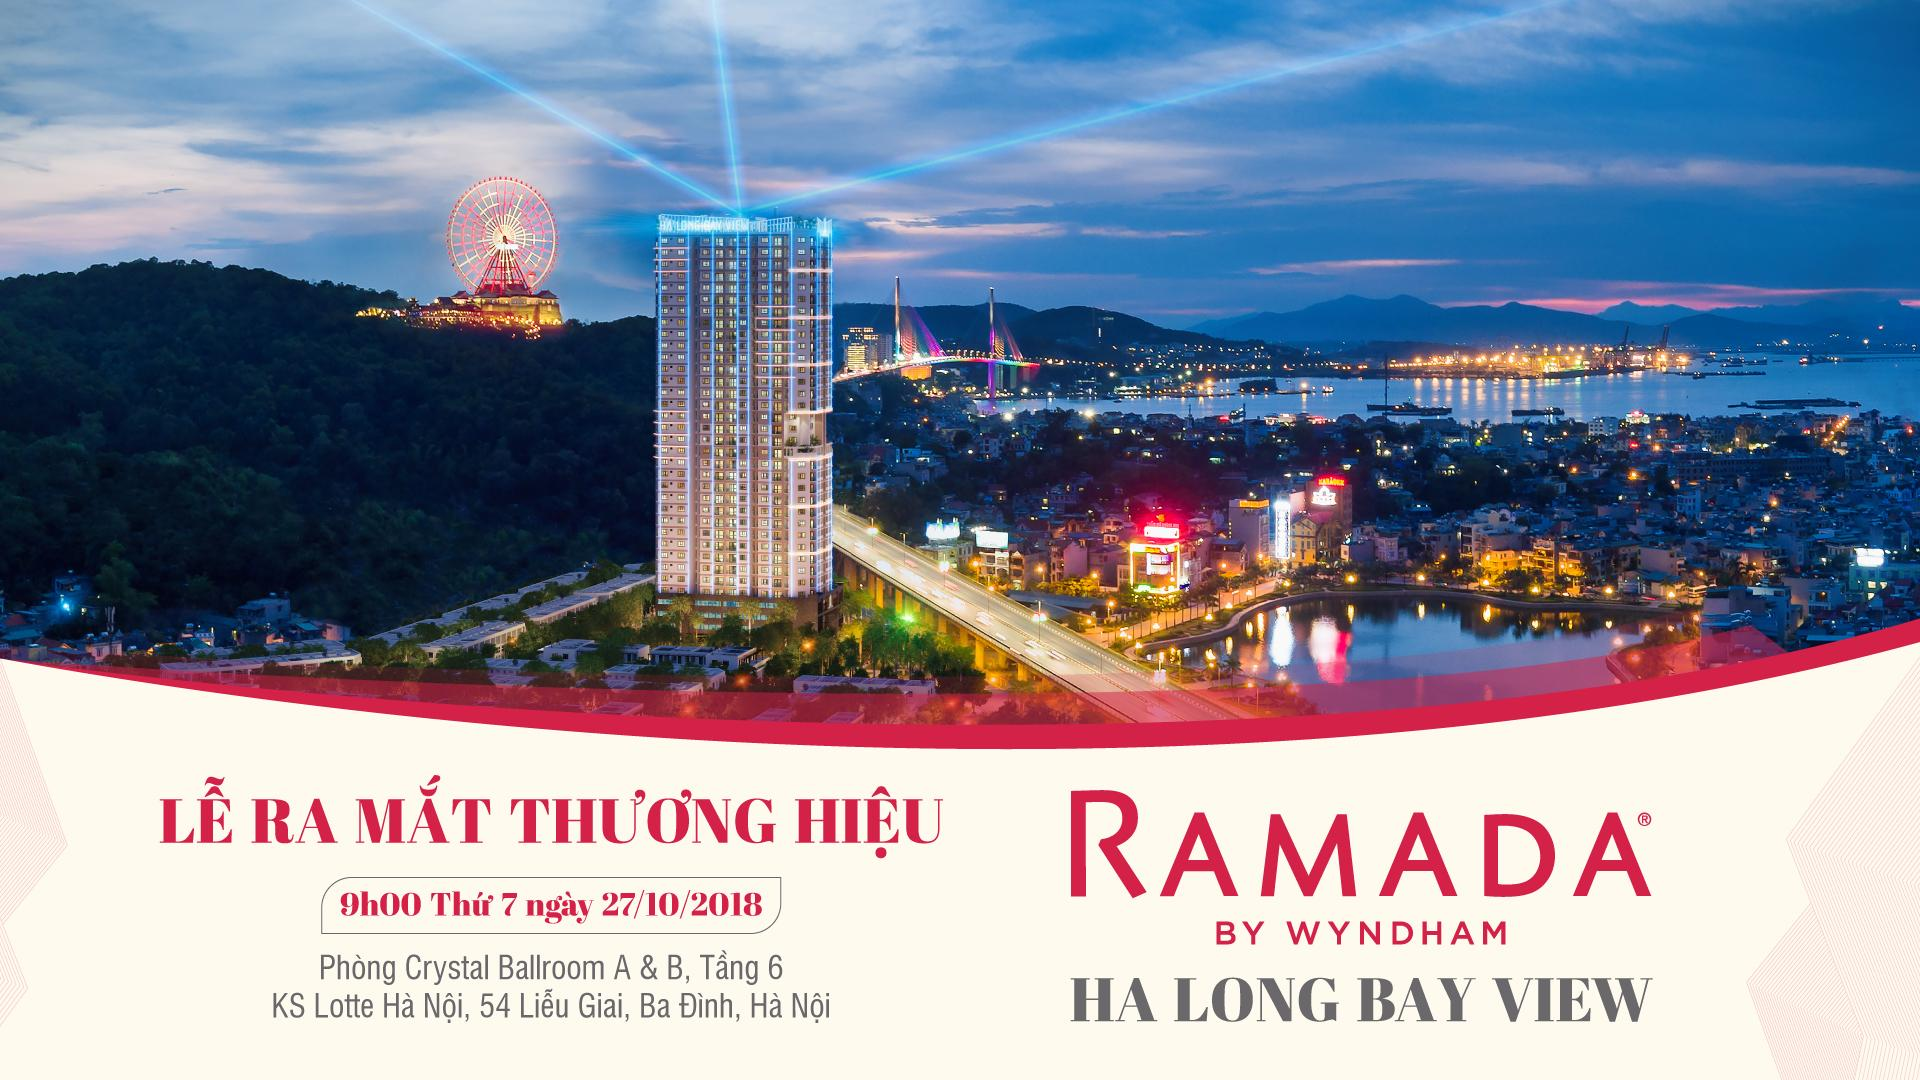 tong-quan-du-an-ramada-wyndham-ha-long-bay-view